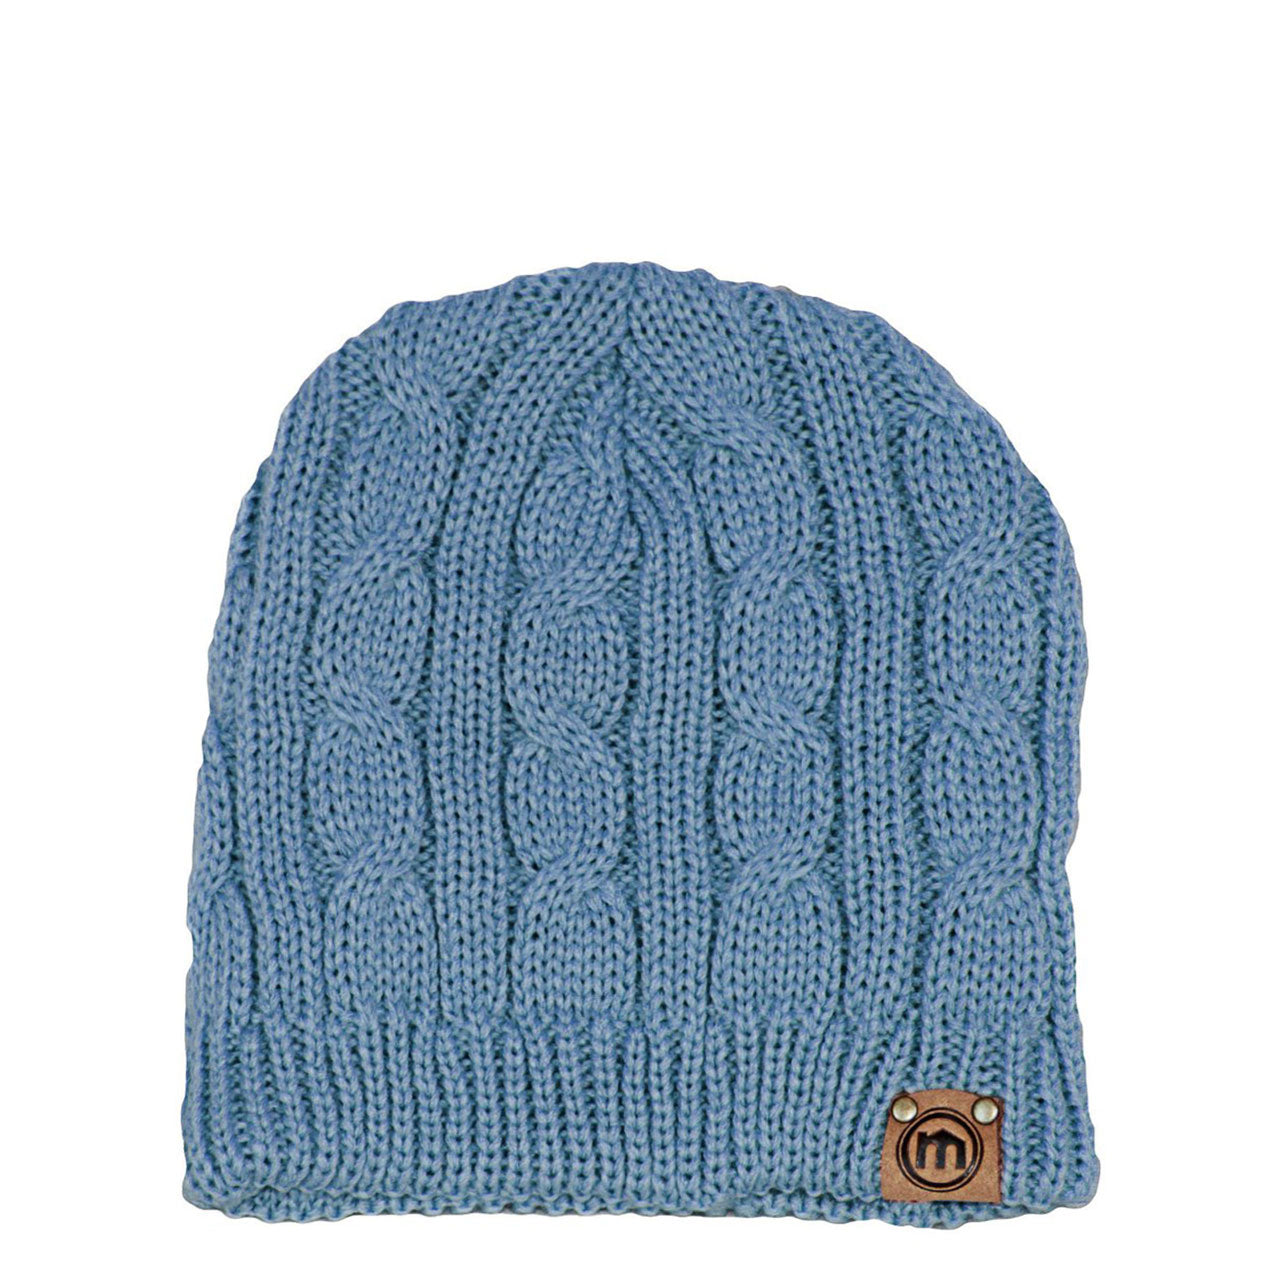 b8acfd35f2c Womens Beanies - Mitscoots Outfitters